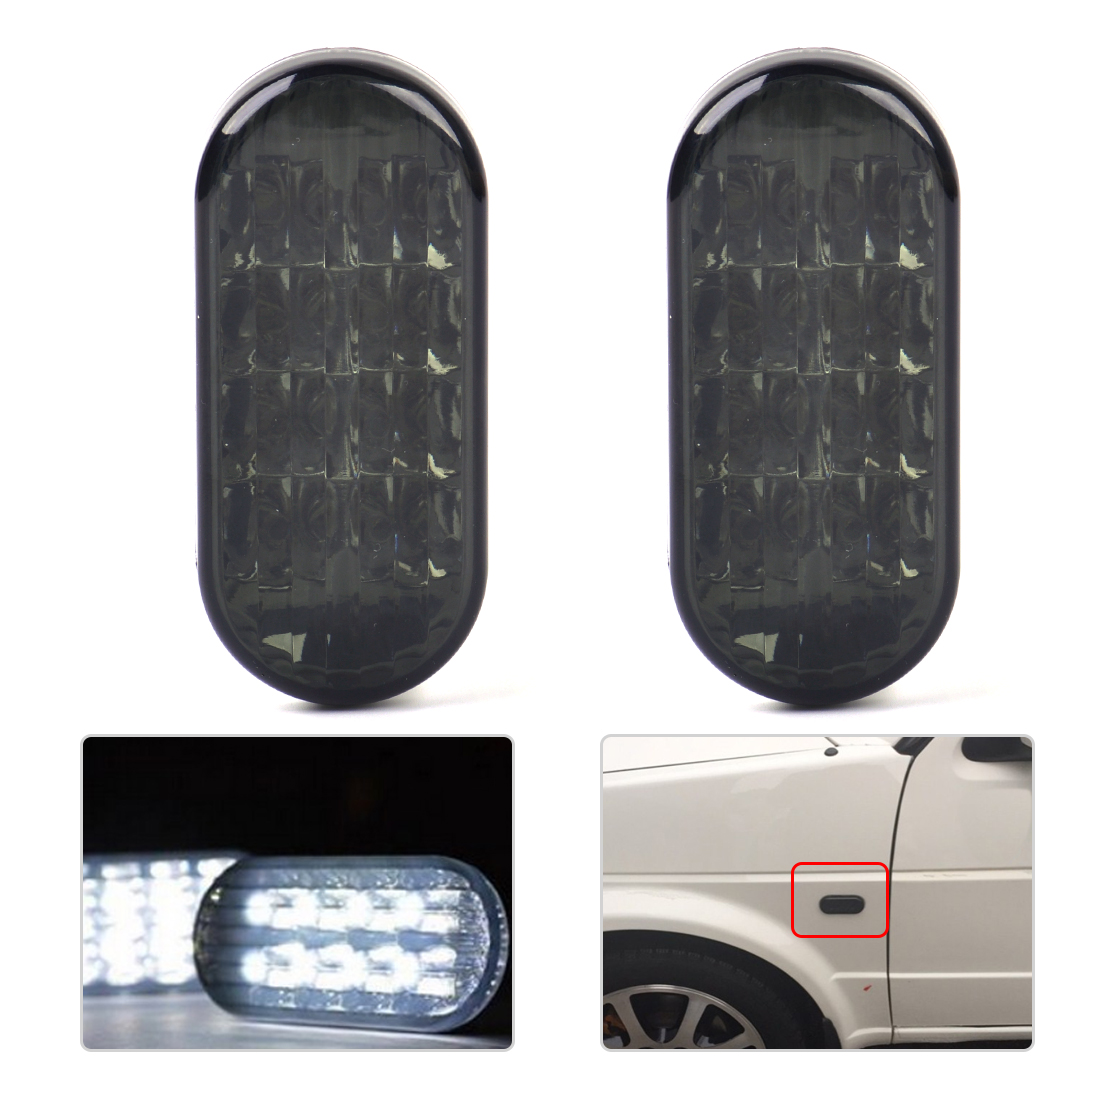 CITALL 2PCS White / Yellow Light Side LED Marker Light Lamp Indicator For VW Golf Jetta Bora MK4 Passat B5 B5.5 1999 - 2003 2004 jeazea glove box light storage compartment lamp 1j0947301 1j0 947 301 for vw jetta golf bora octavia 2000 2001 2002 2003 2004